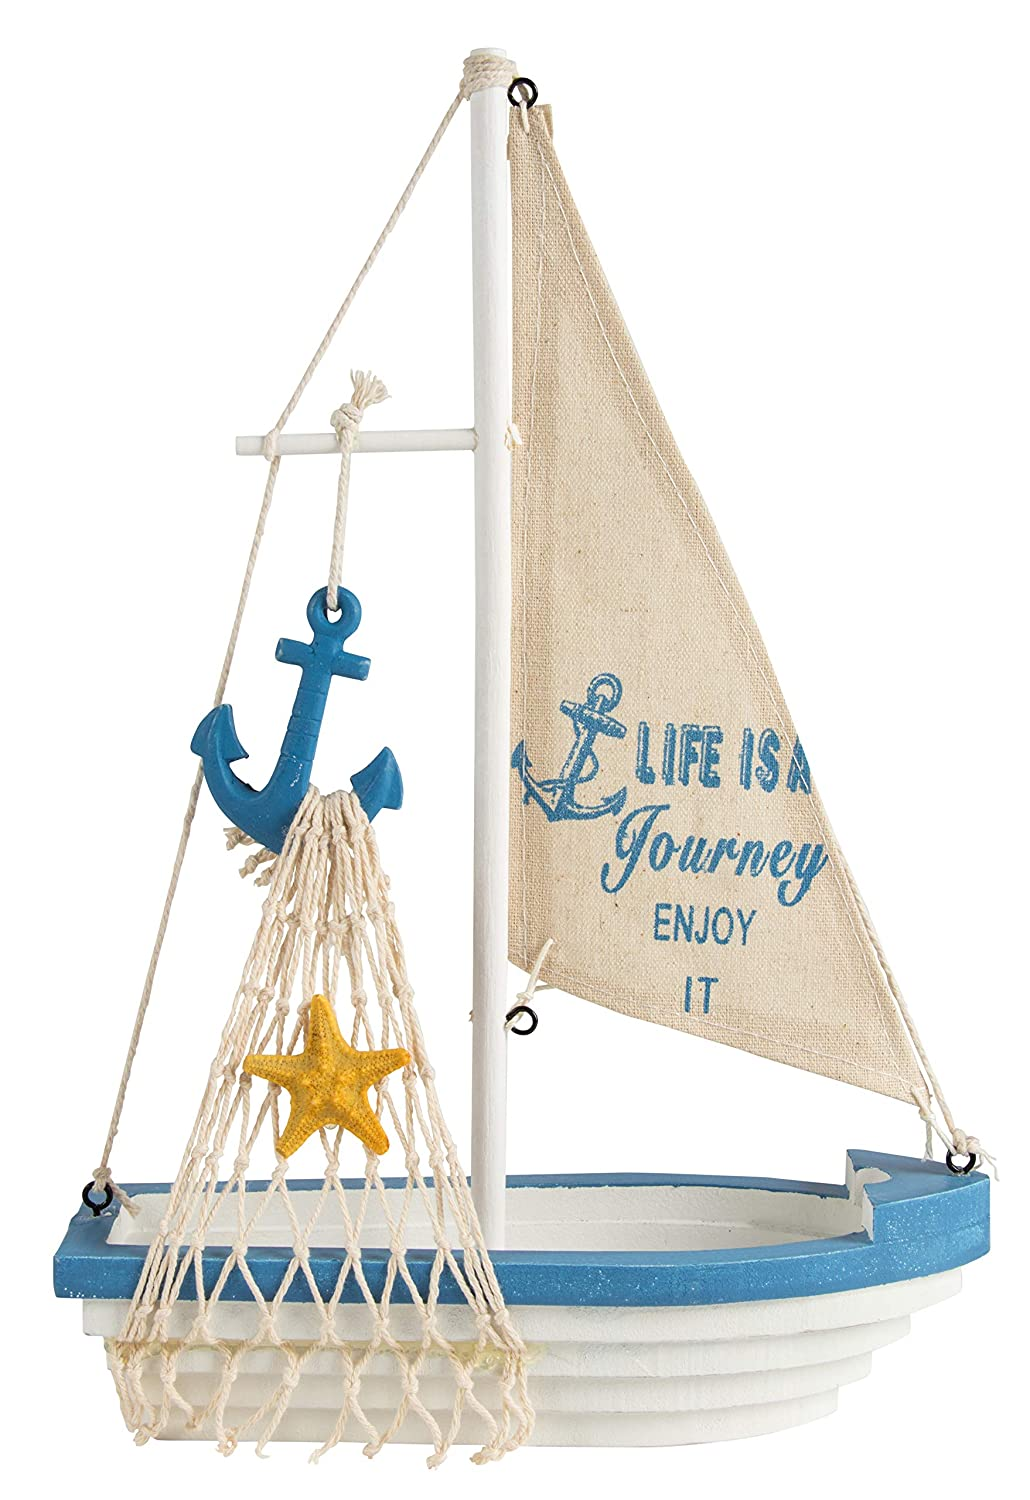 Juvale Sailboat Model Decoration - Wooden Sailing Boat Home Decor Set, Beach Nautical Design, Navy Blue and White with Anchor, 12.5 x 8.25 x 3 Inches